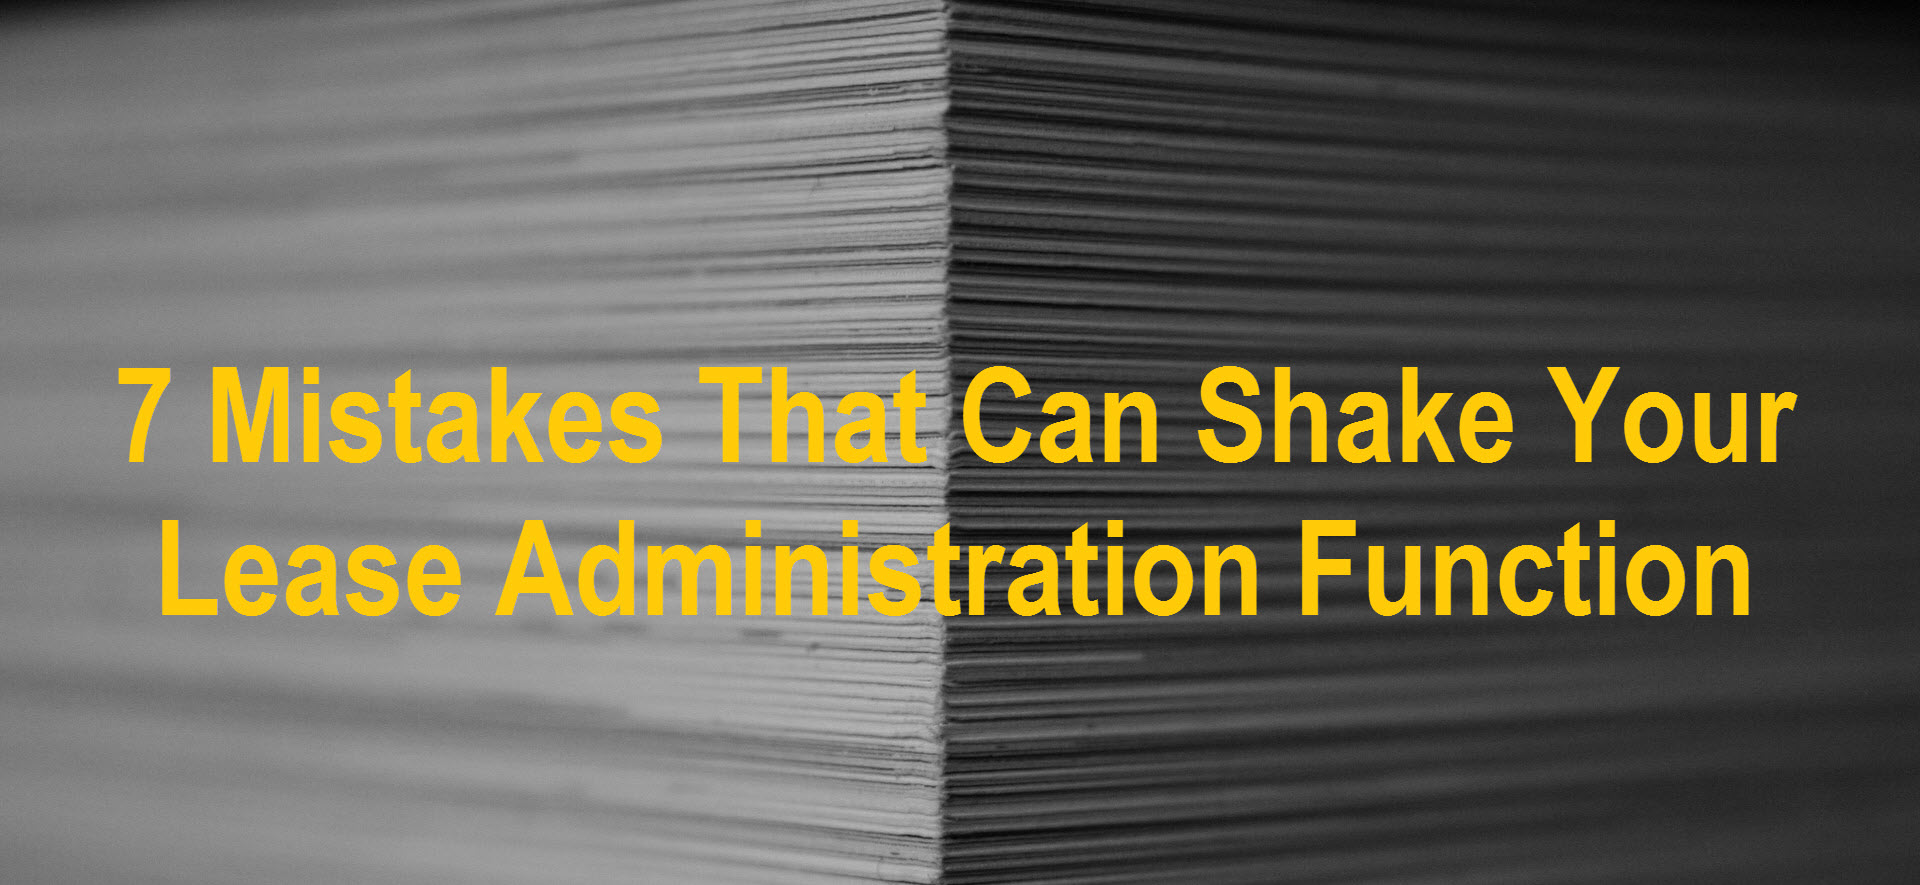 7 Mistakes that can shake your Lease Administration Function